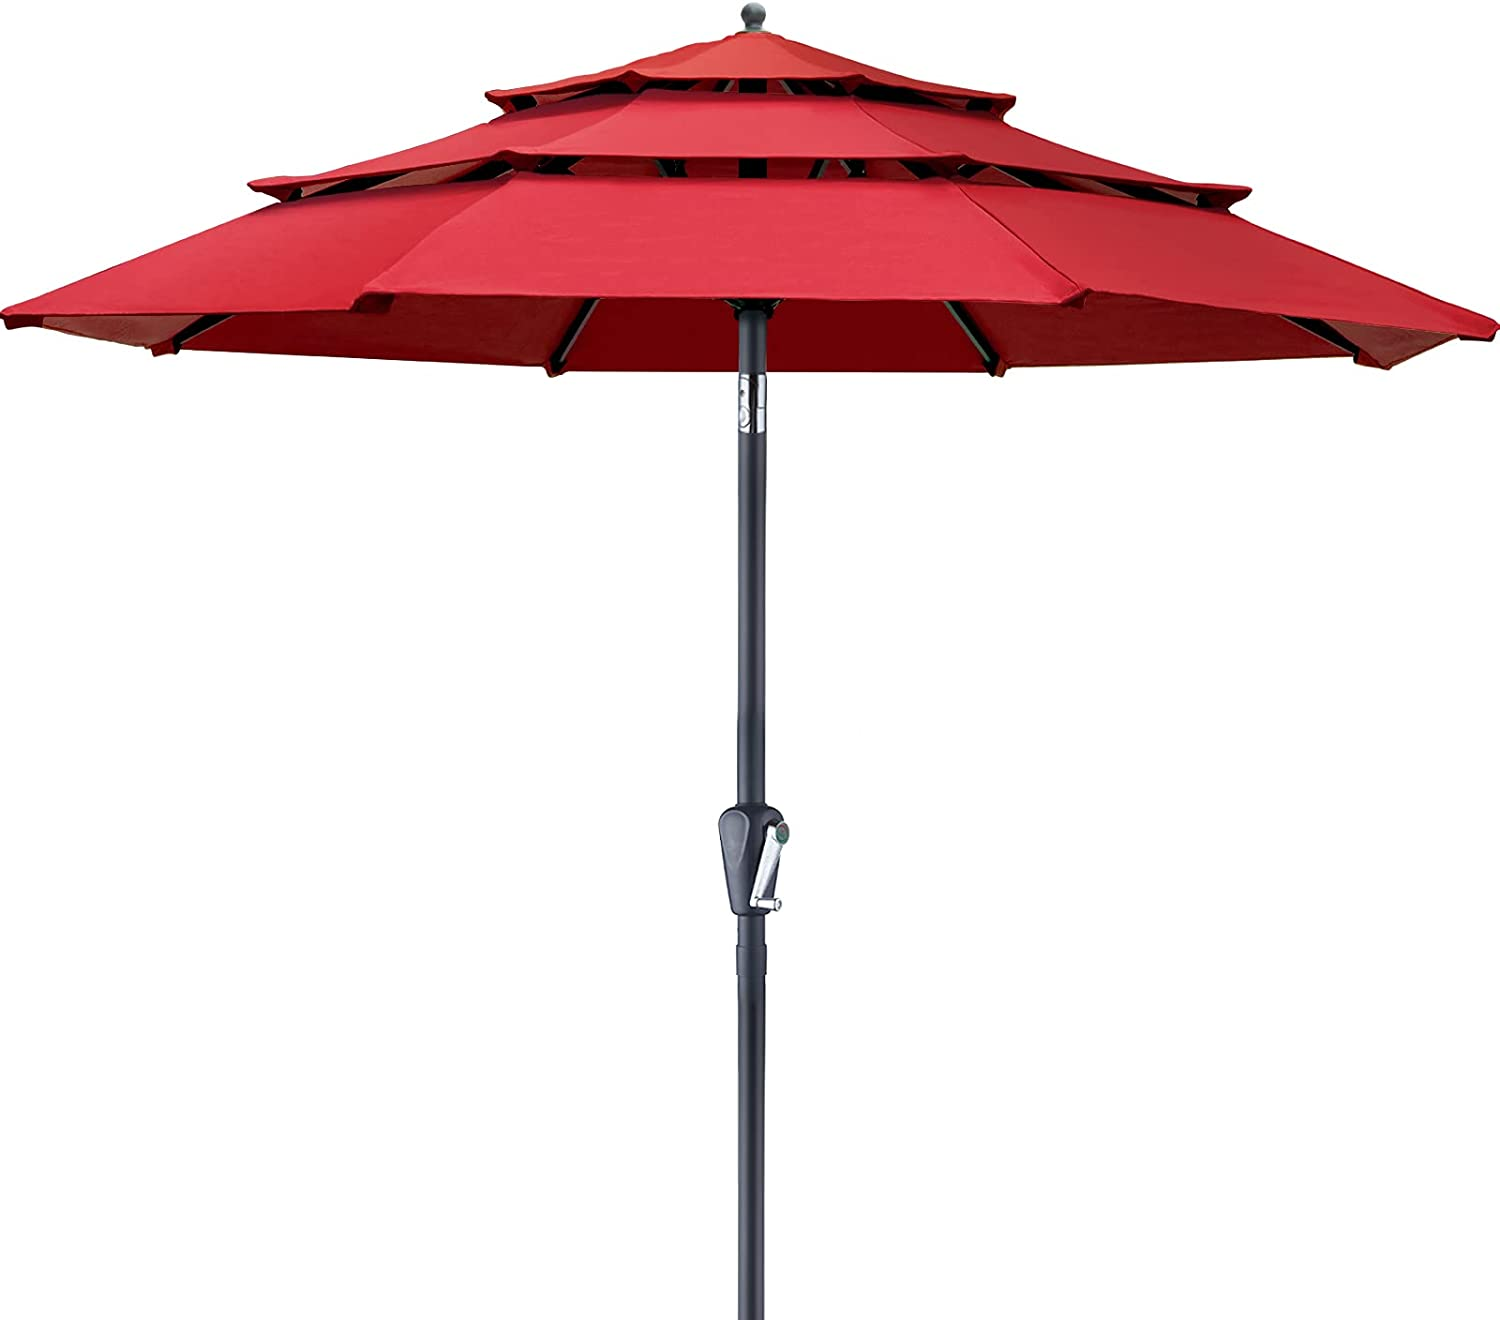 Patiassy 10ft 3 Tiers Patio Umbrella 600D 250/Gsm Solution-Dyed Fabric Outdoor Patio Table Umbrella with 8 Sturdy Ribs for Garden, Lawn, Deck, Backyard and Pool